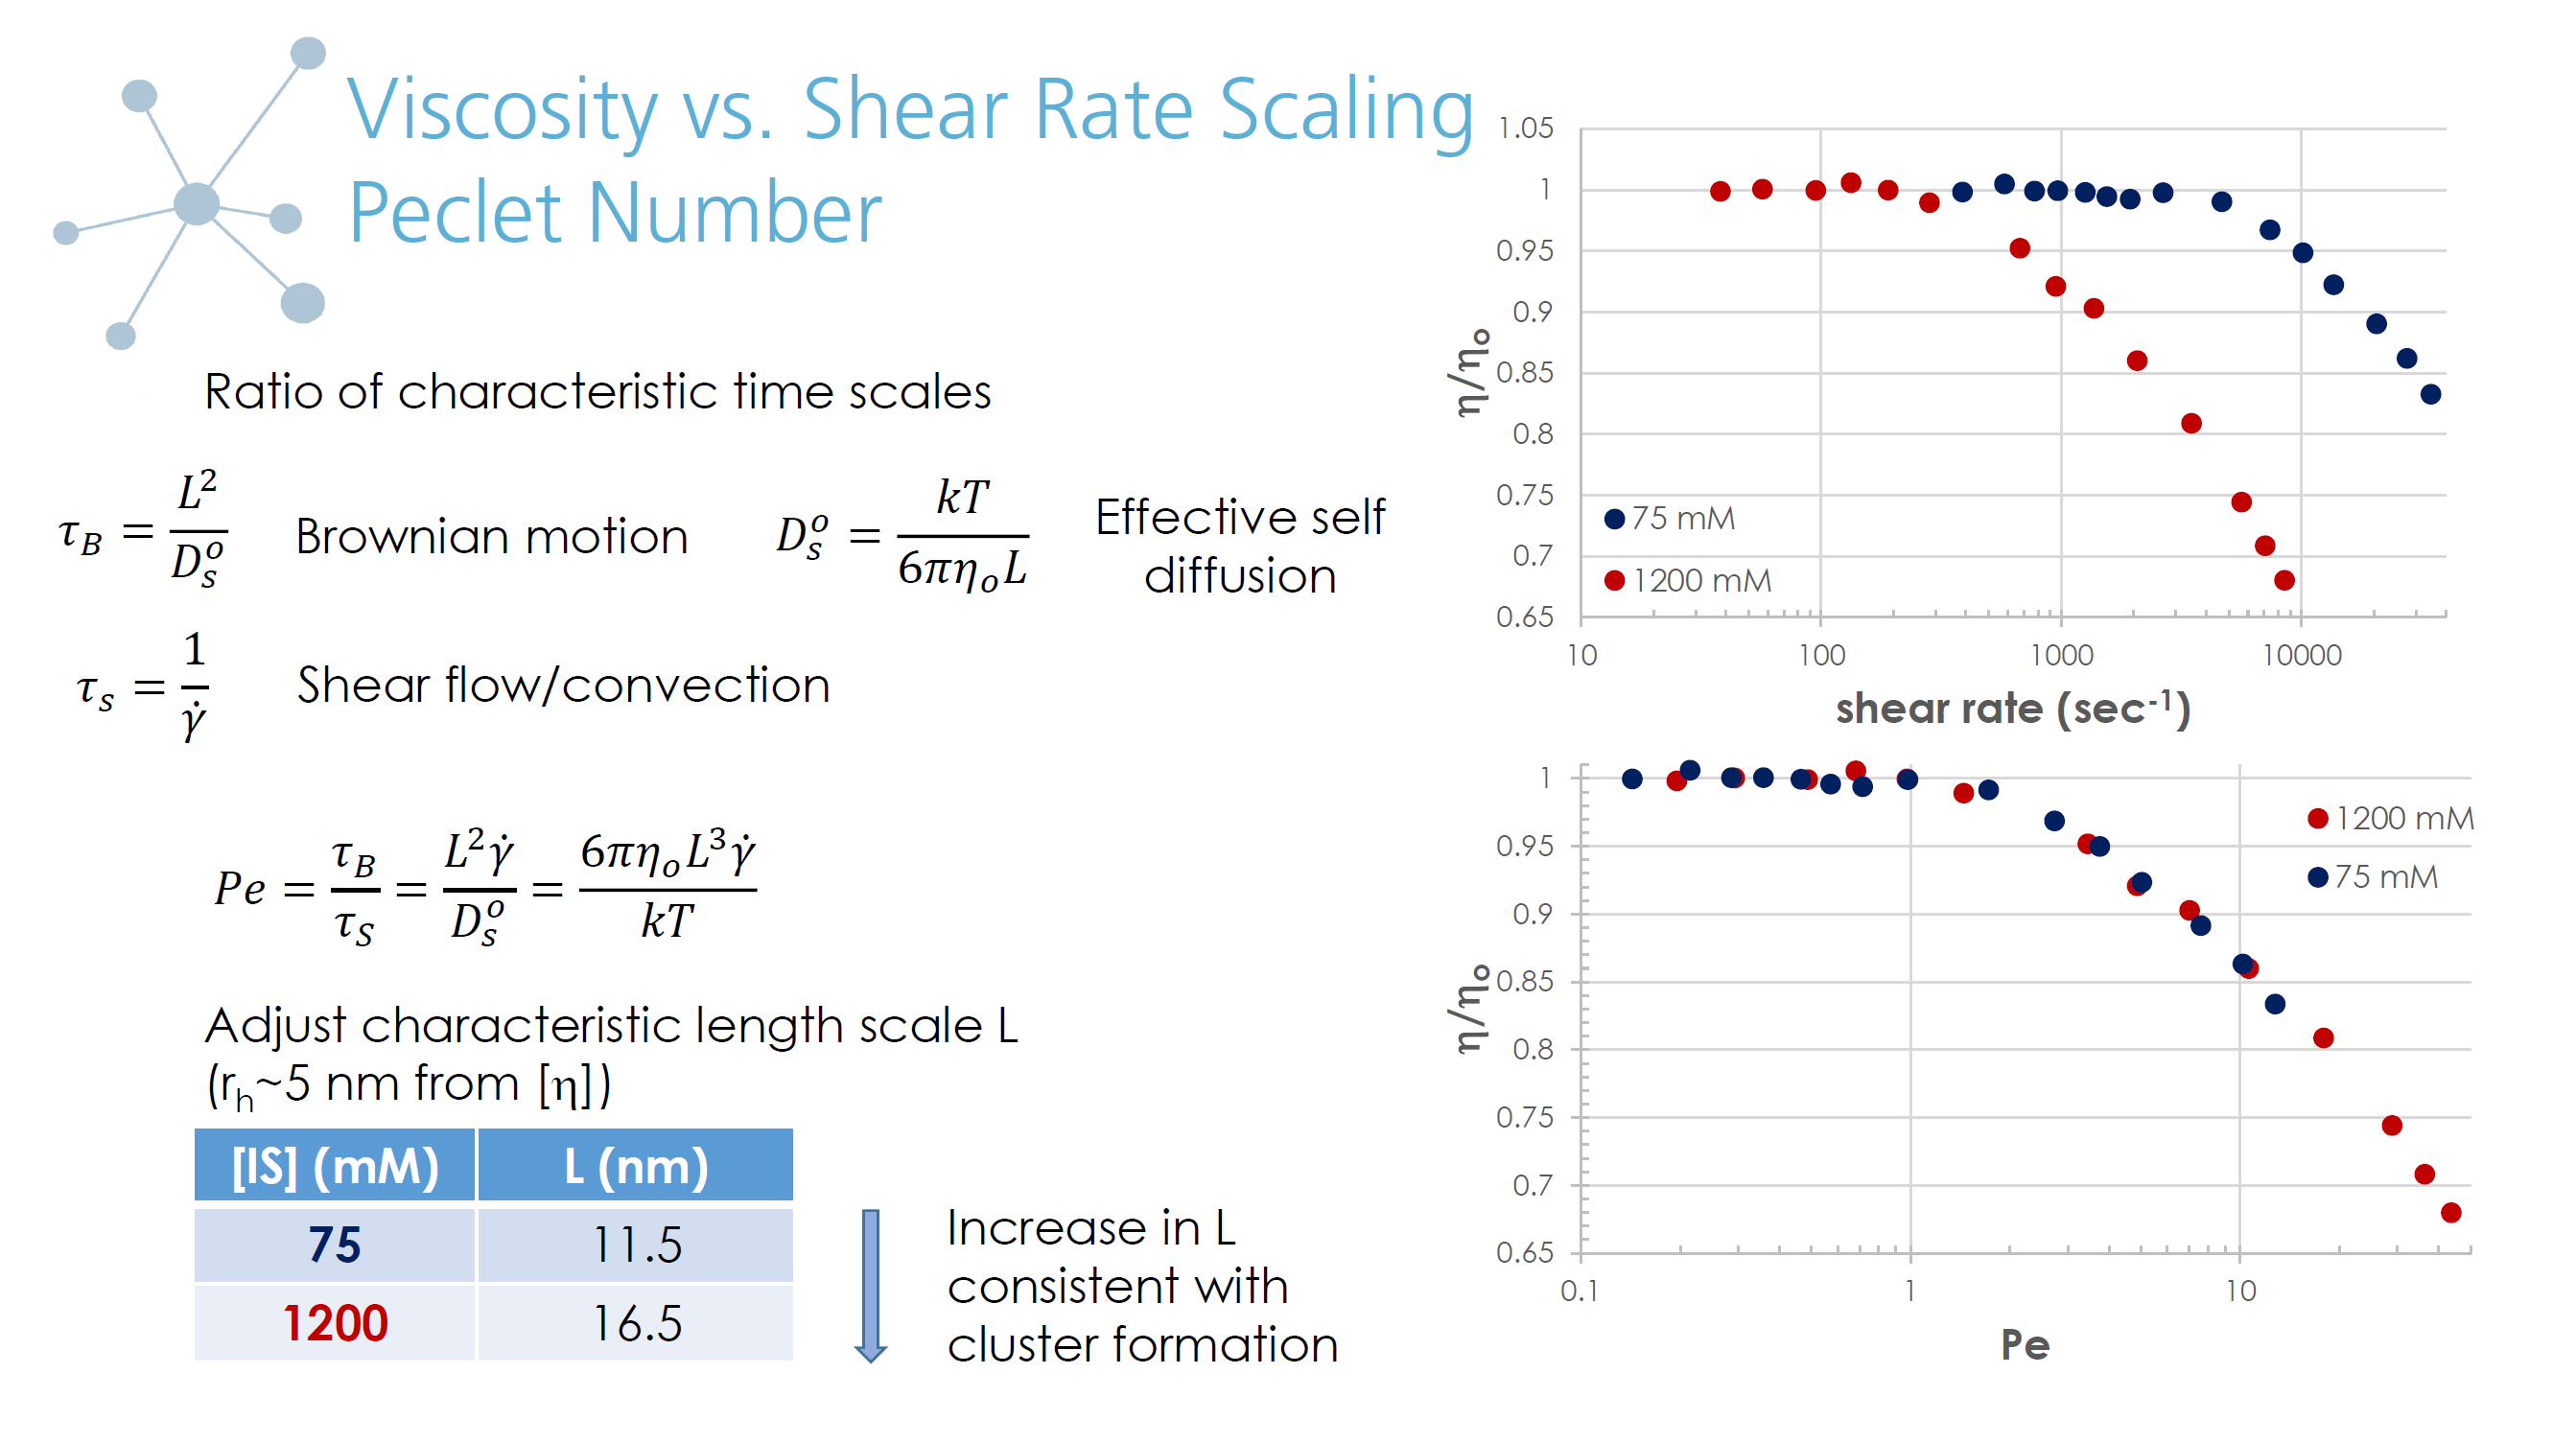 Viscosity vs. Shear Rate Scaling Peclet Number